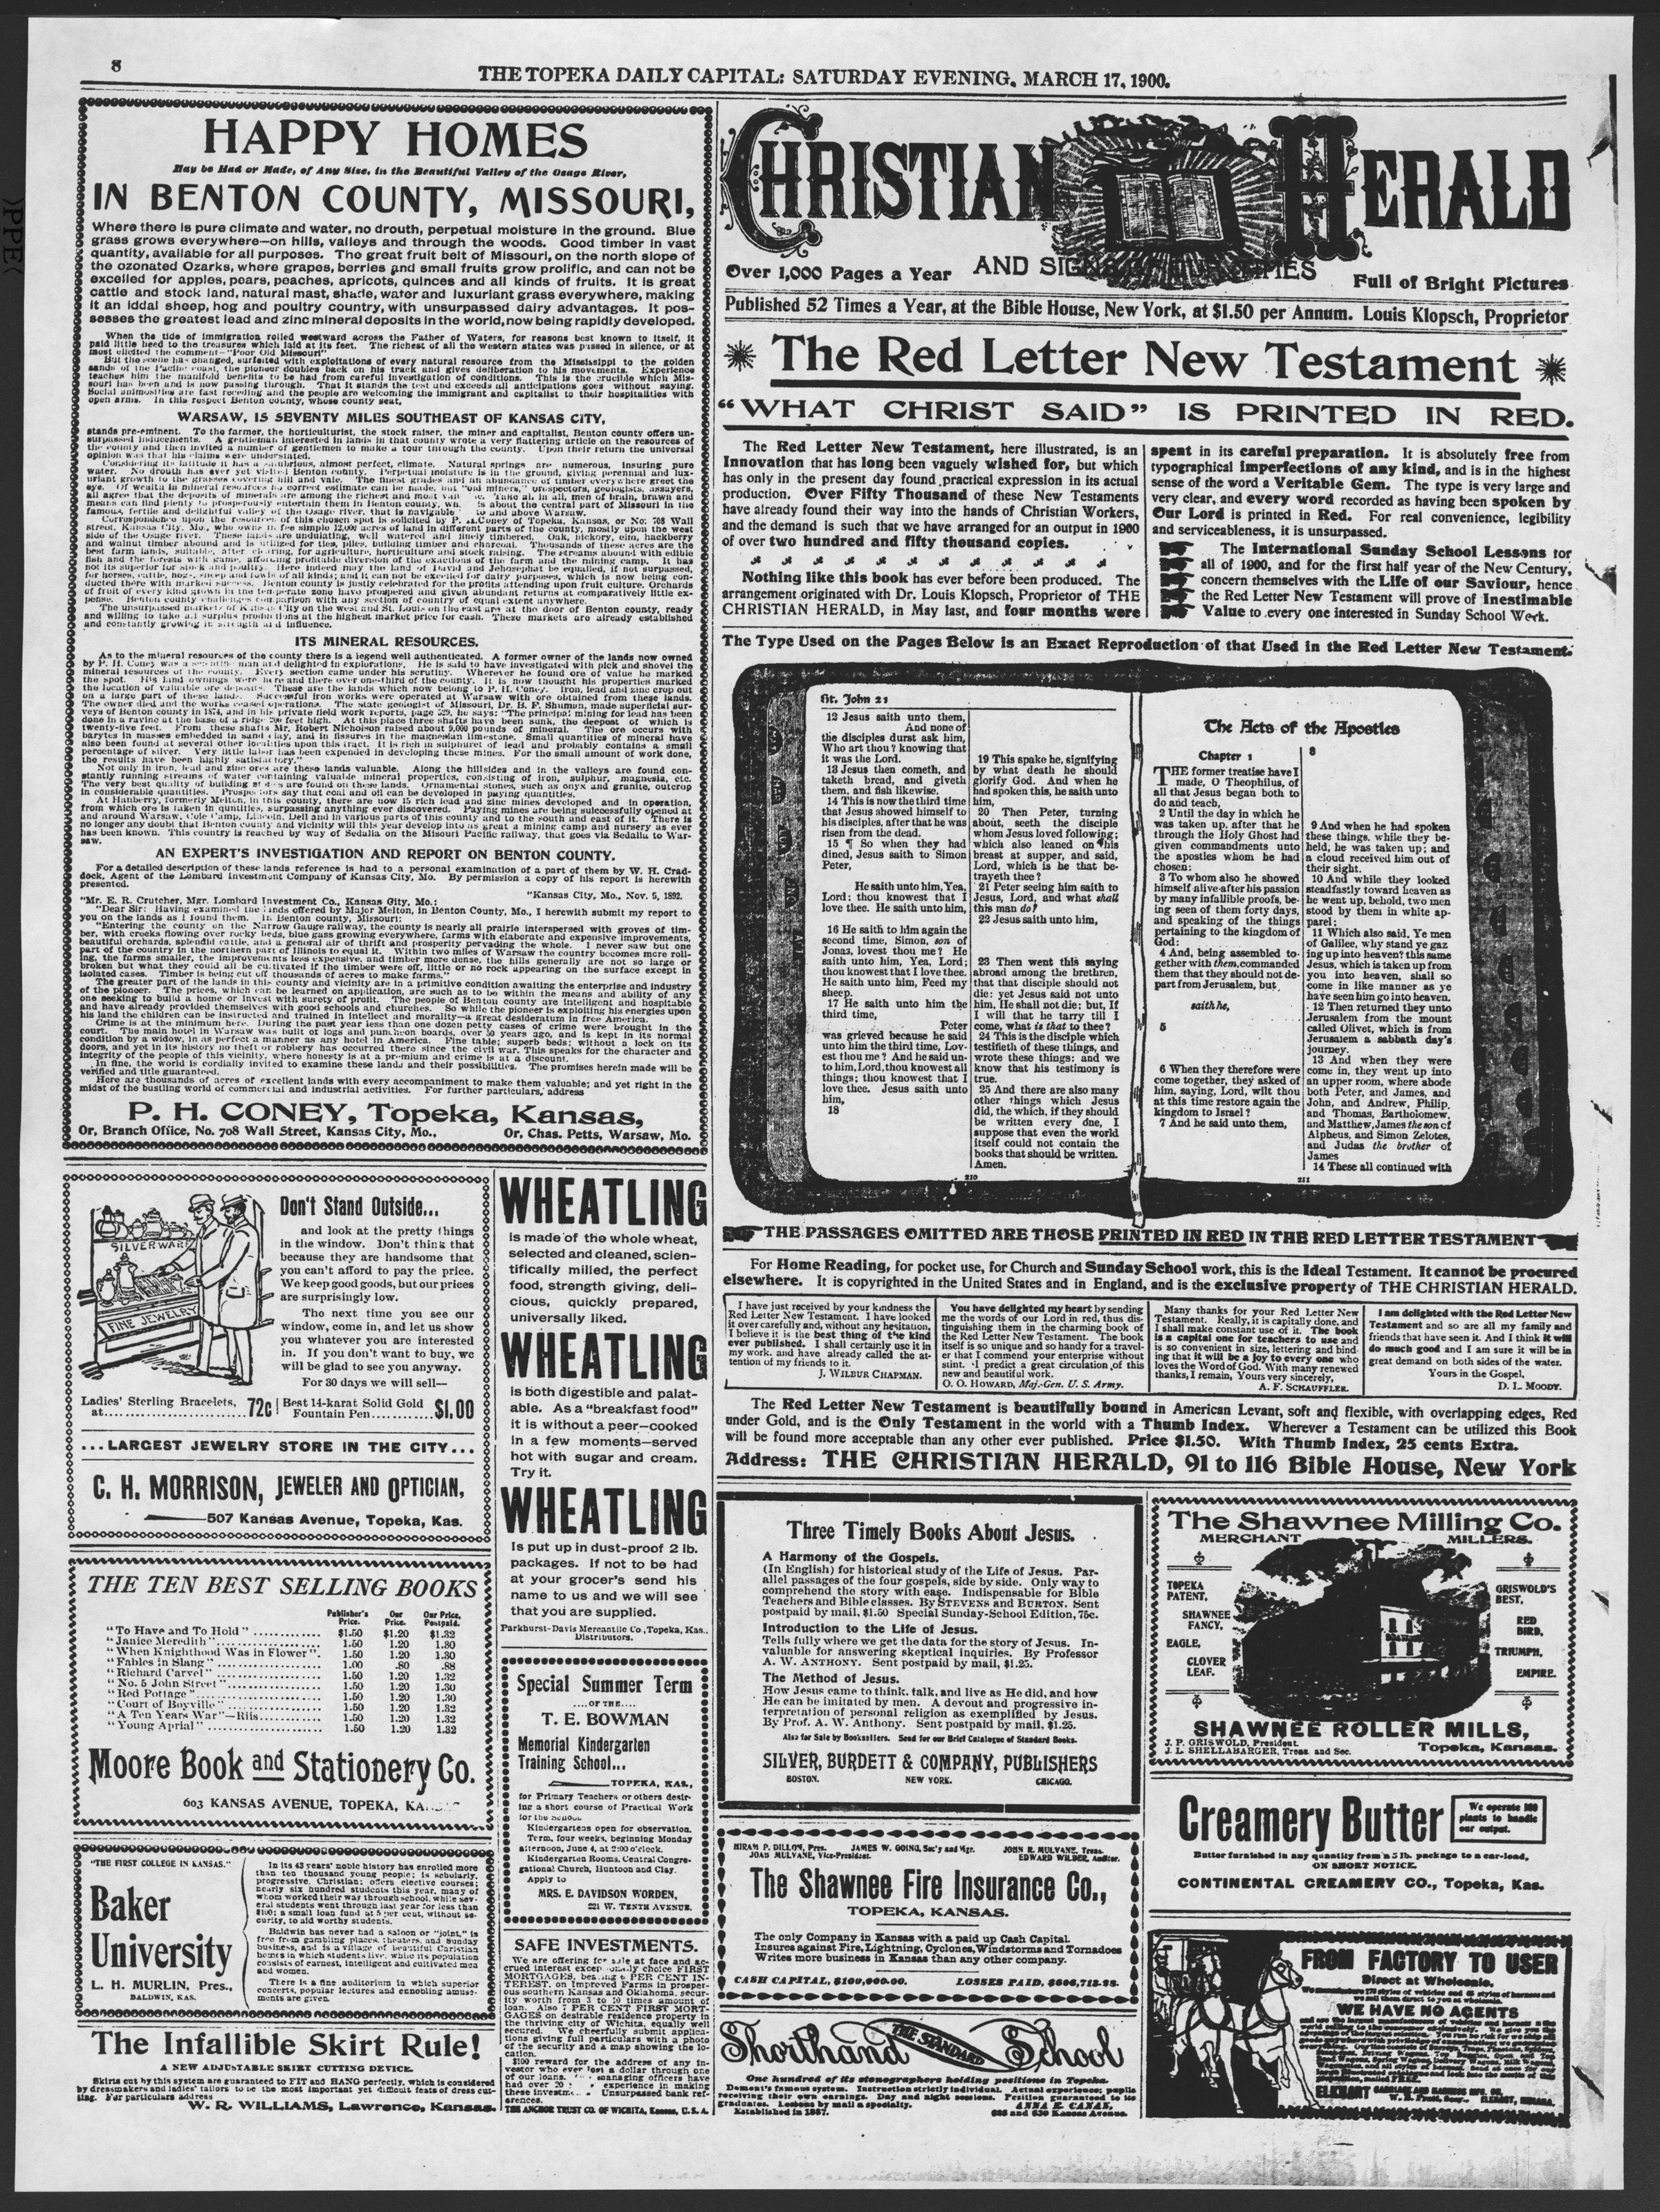 The Topeka daily capital. Sheldon edition - 8, Saturday Evening, March 17, 1900.